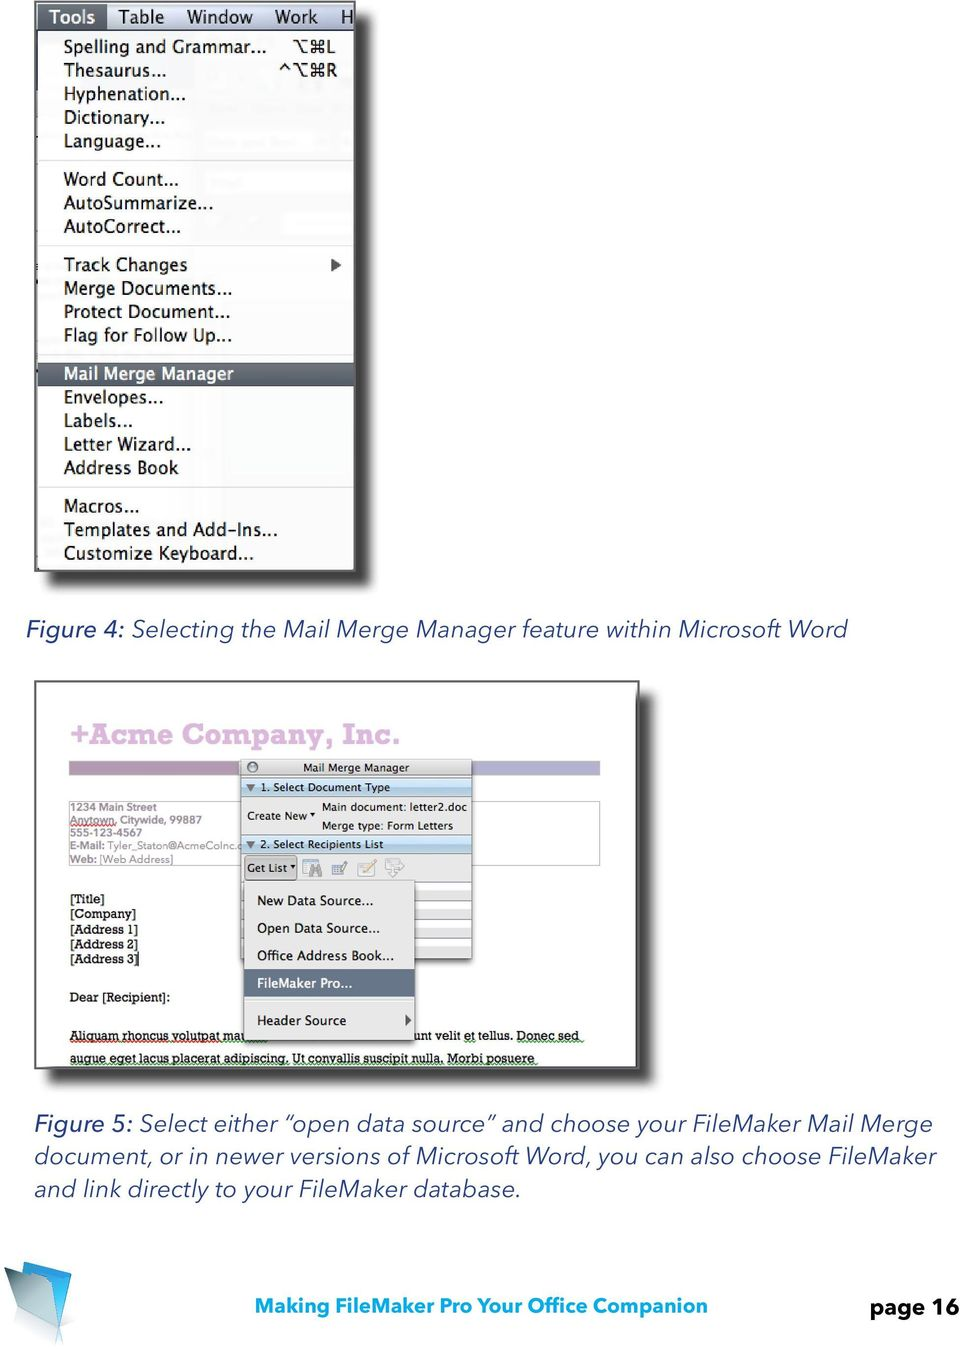 or in newer versions of Microsoft Word, you can also choose FileMaker and link